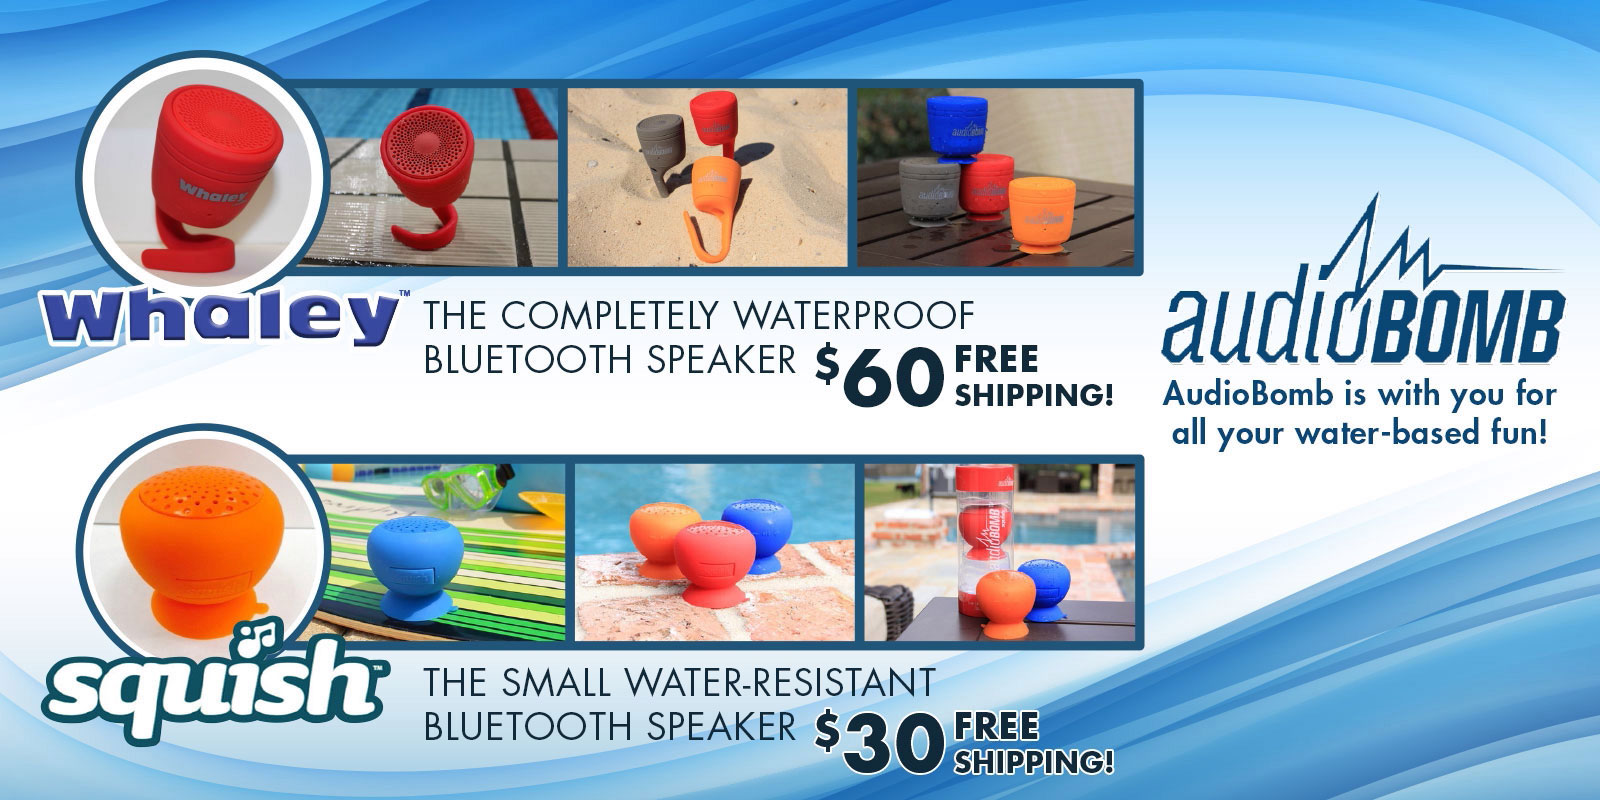 AudioBomb Bluetooth Speakers